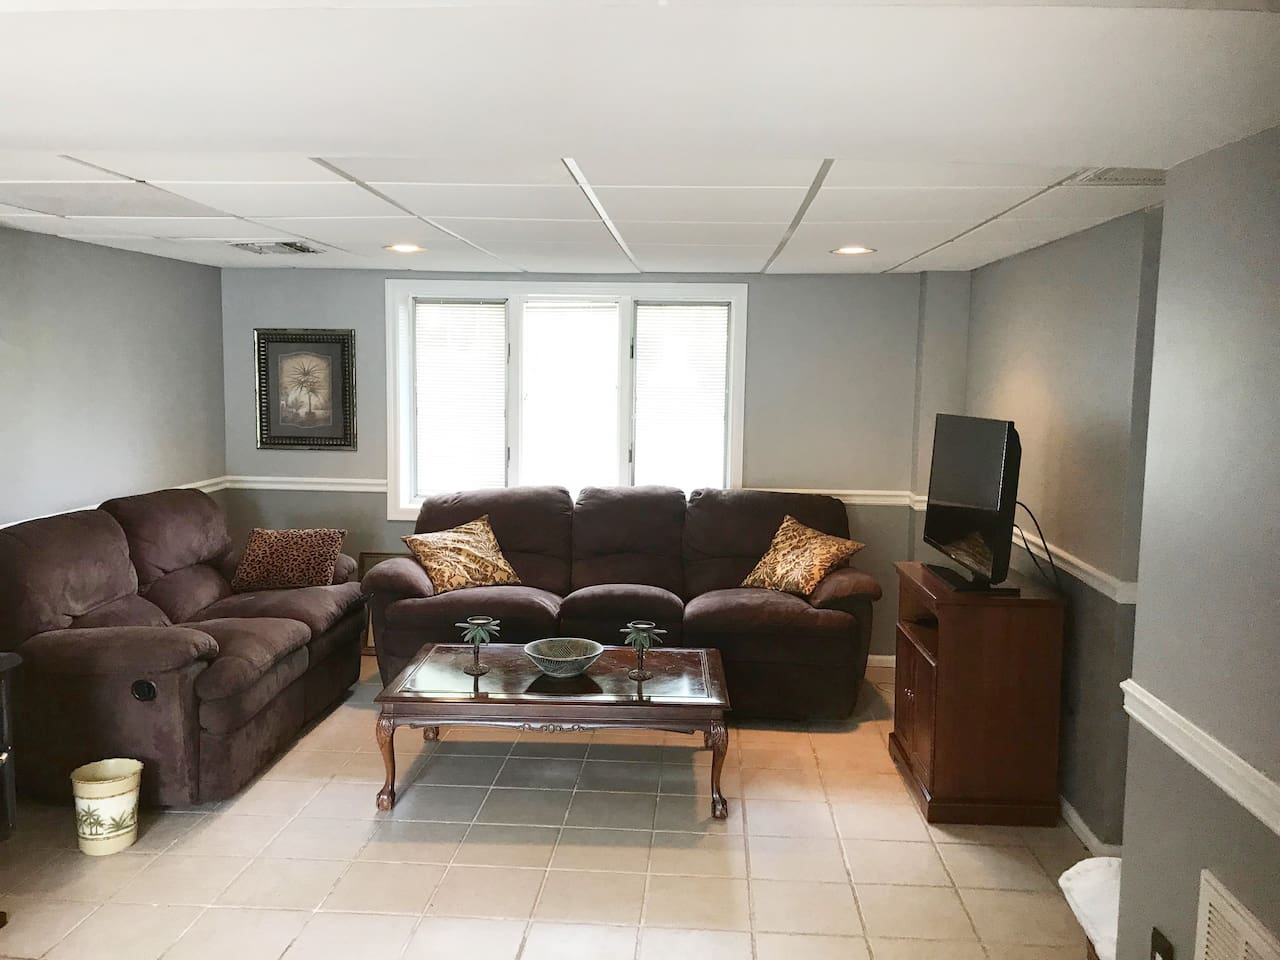 Living area with TV.